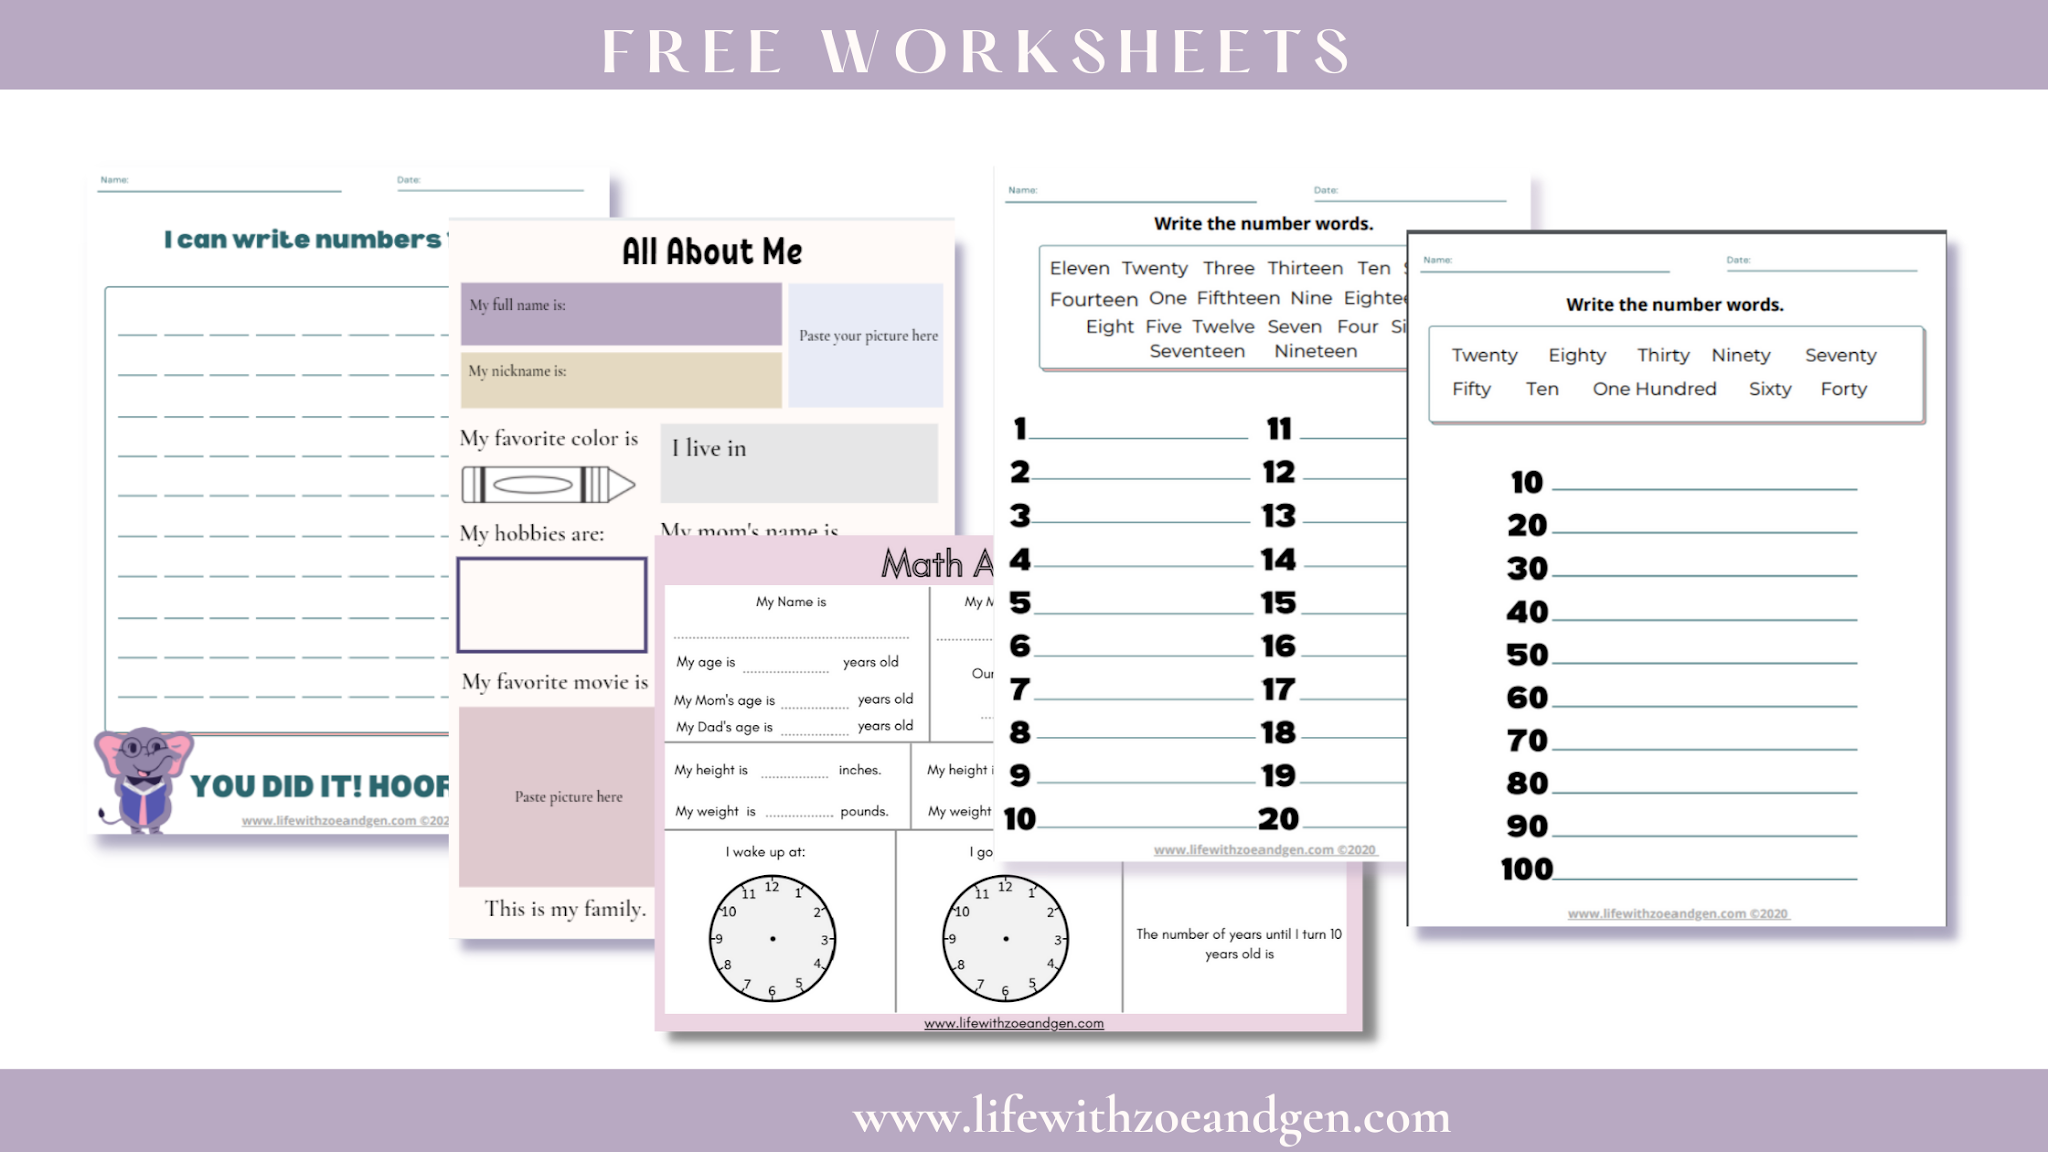 How our first week of homeschooling went by and free worksheets for Grade 1. Download now! l Life with ZG l Homeschooling PH l Chosen education